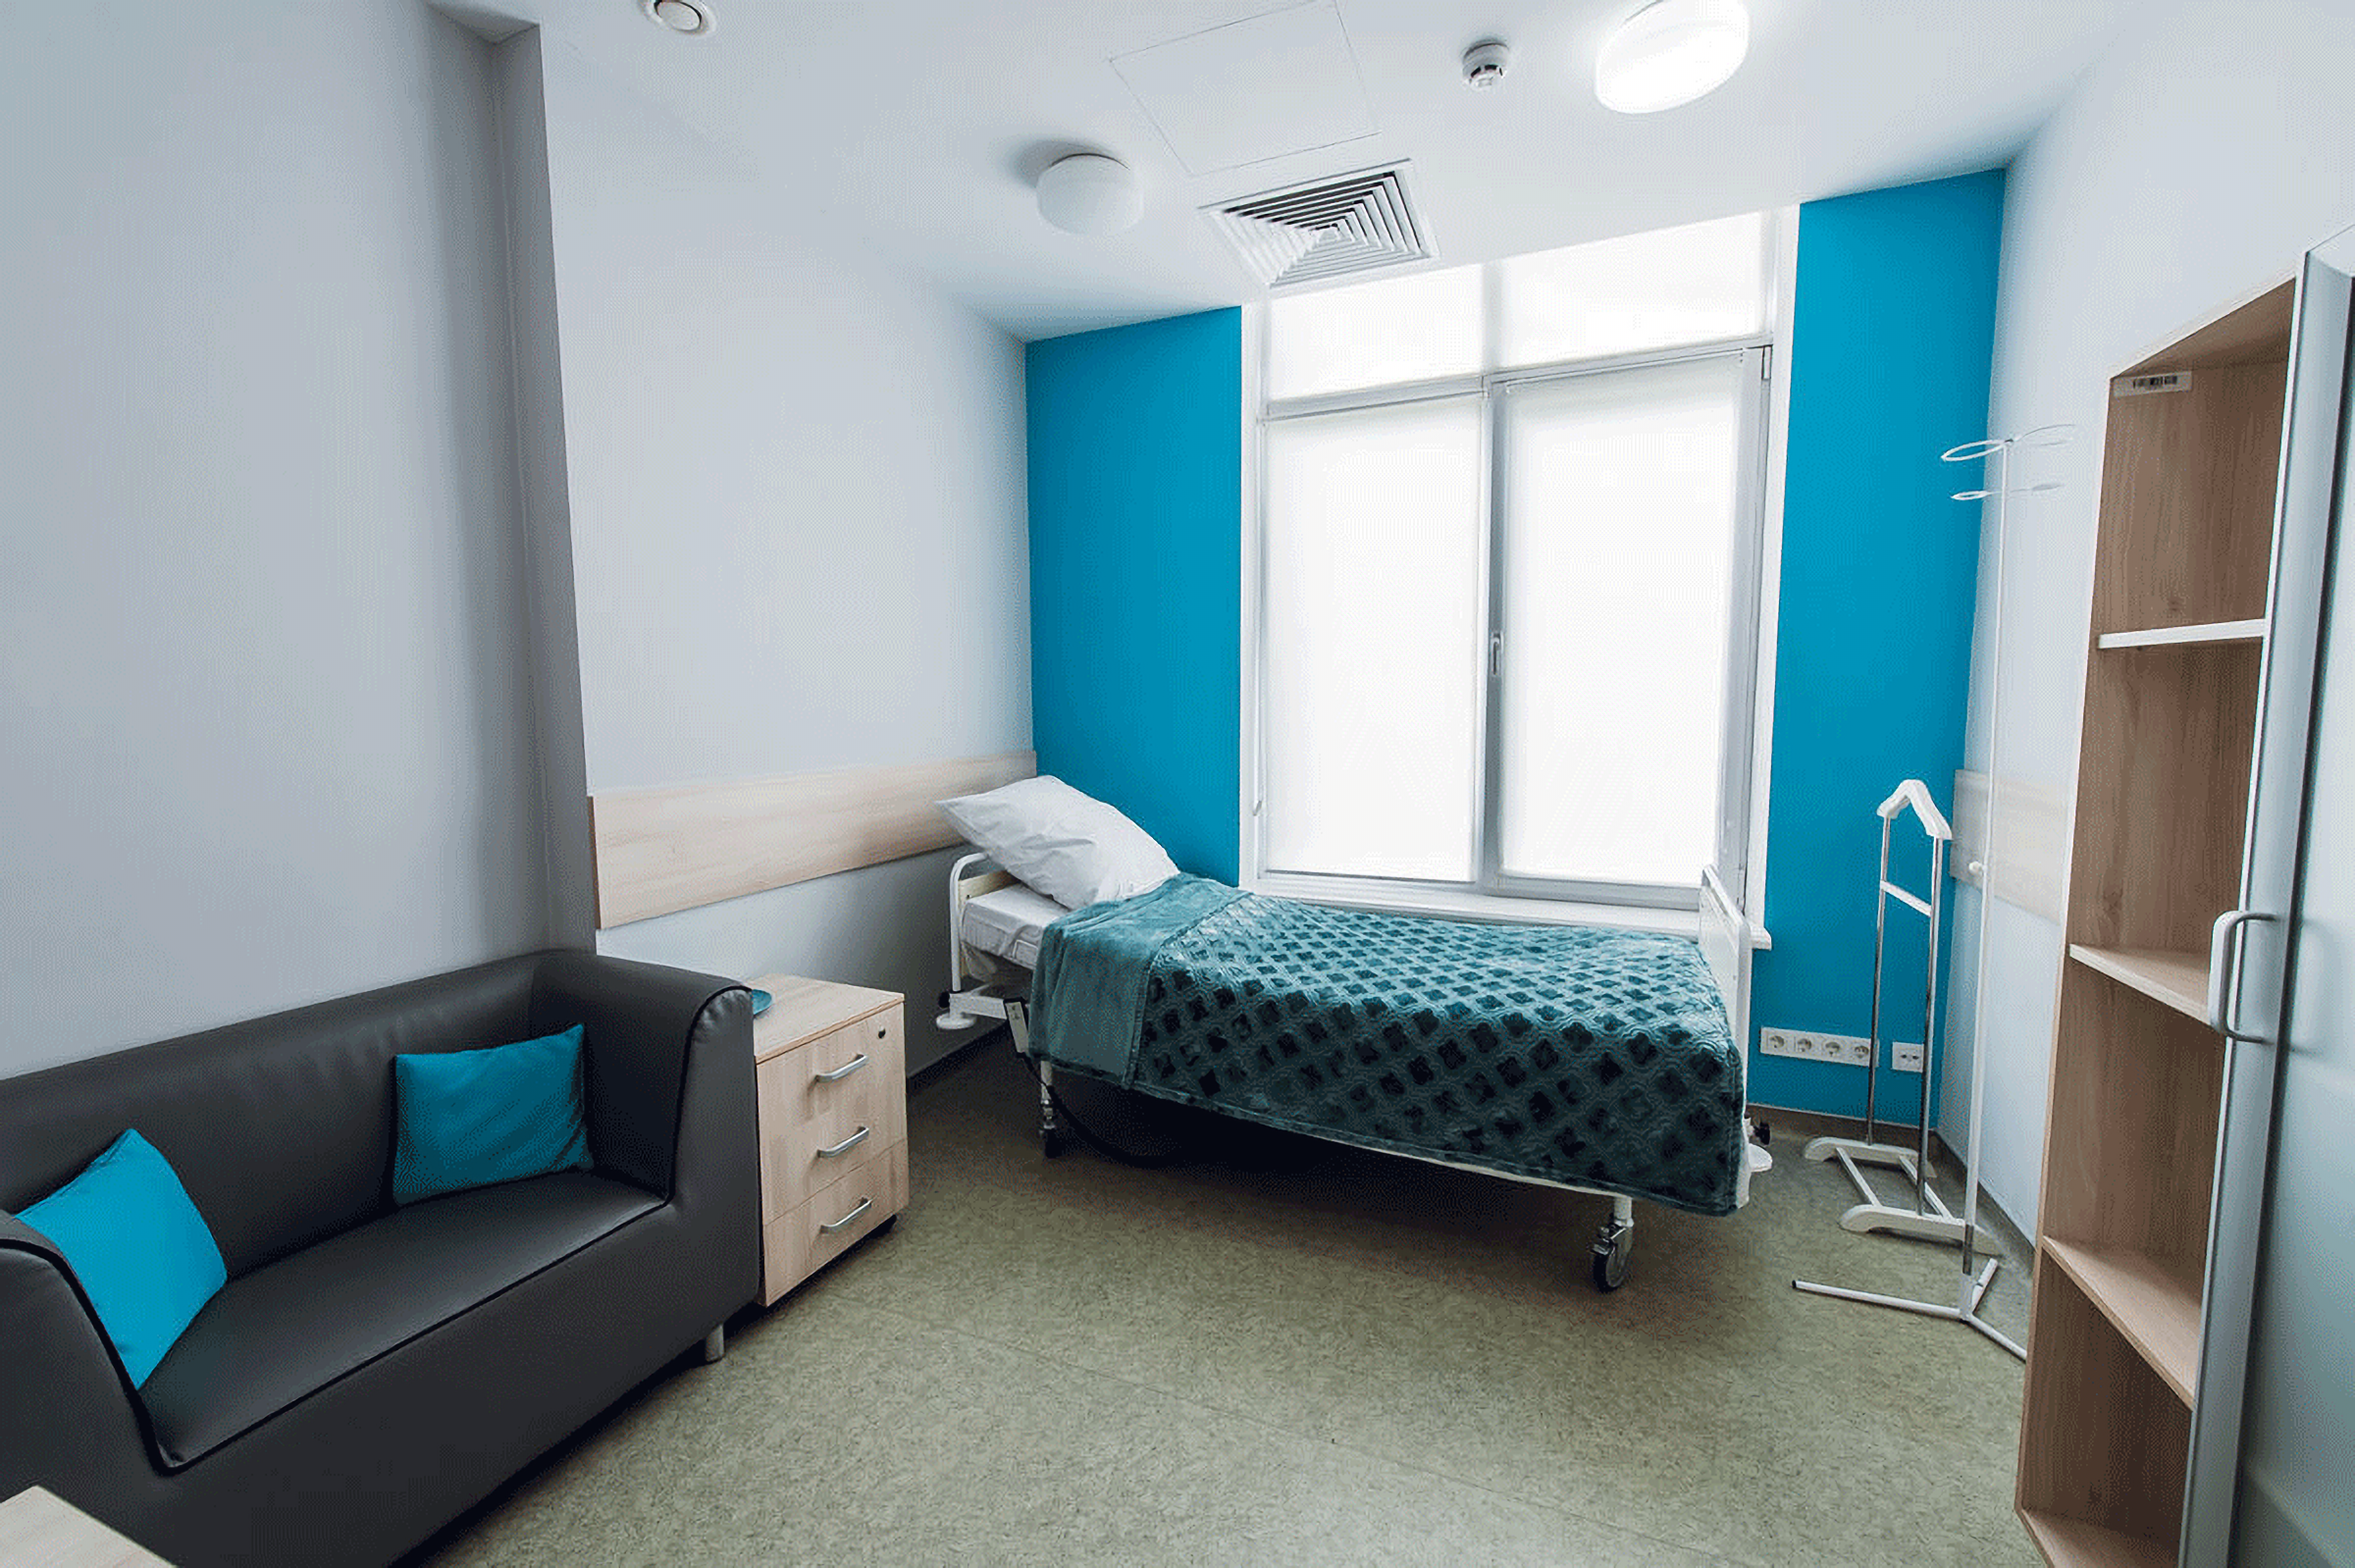 Room in the GOOD CELLS Clinic Ukraine